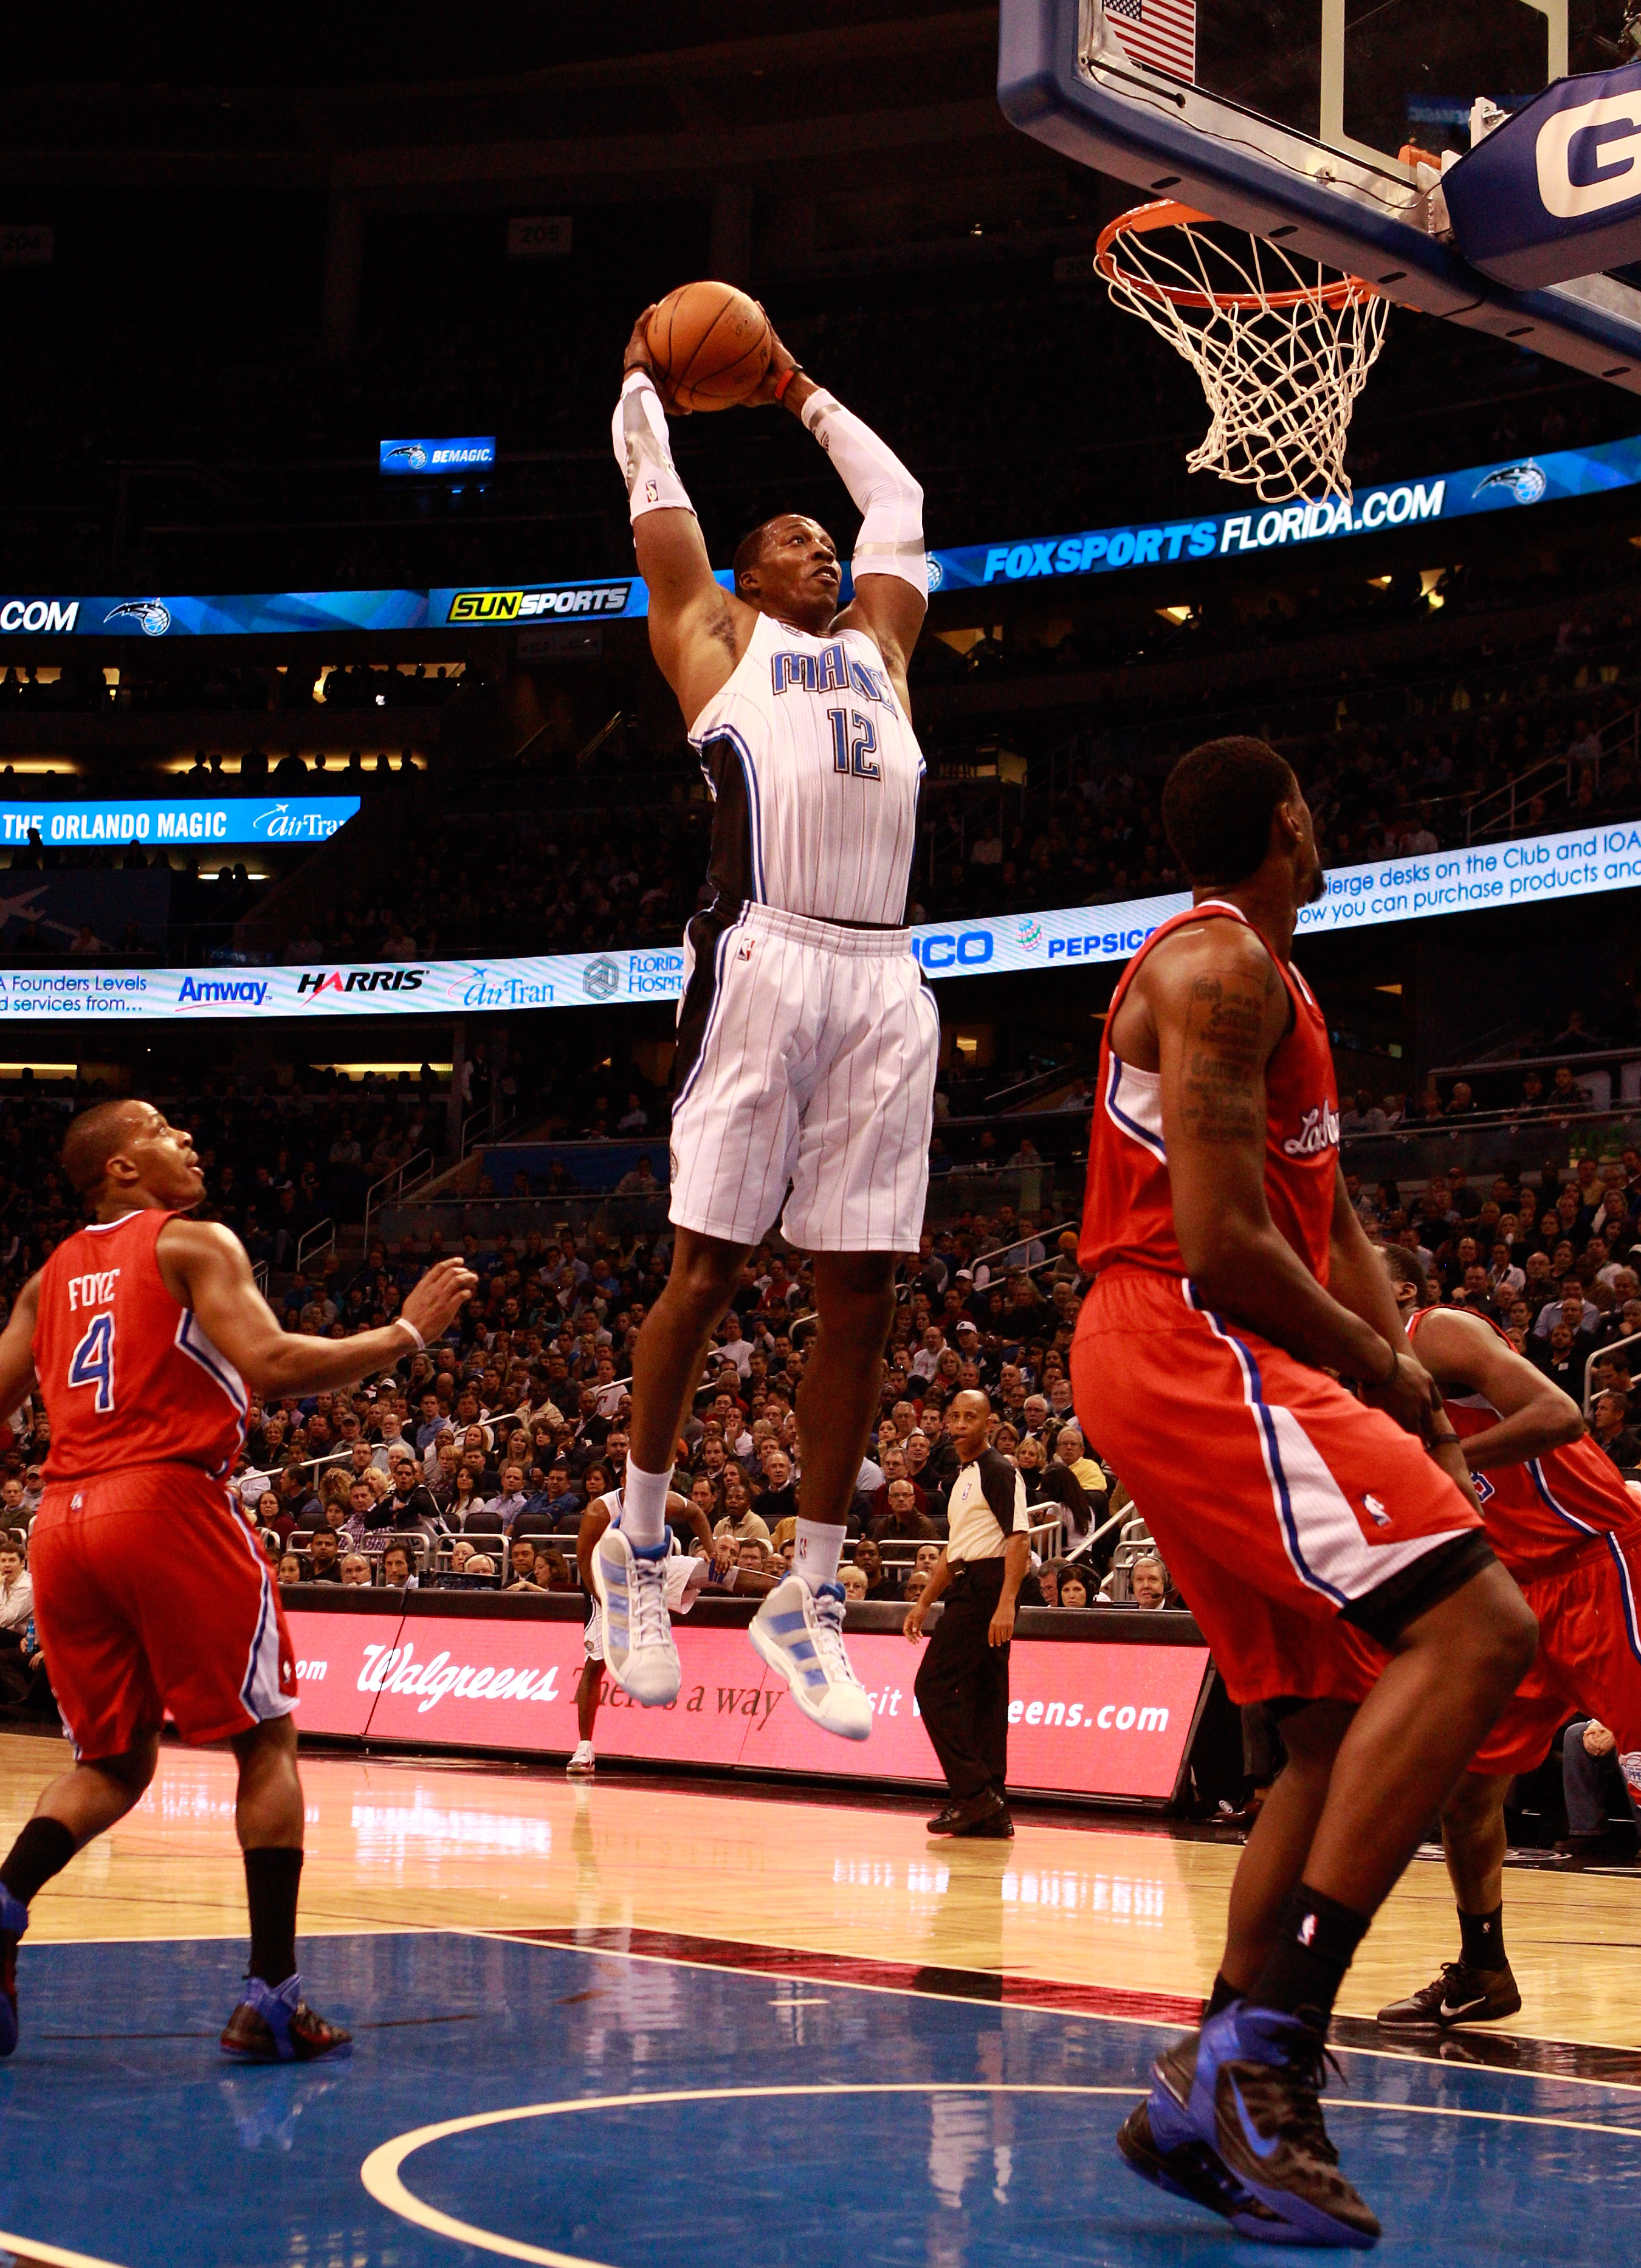 ORLANDO, FL - FEBRUARY 08:  Dwight Howard #12 of the Orlando Magic attempts a shot during a game against the Los Angeles Clippers at Amway Arena on February 8, 2011 in Orlando, Florida.  NOTE TO USER: User expressly acknowledges and agrees that, by downlo